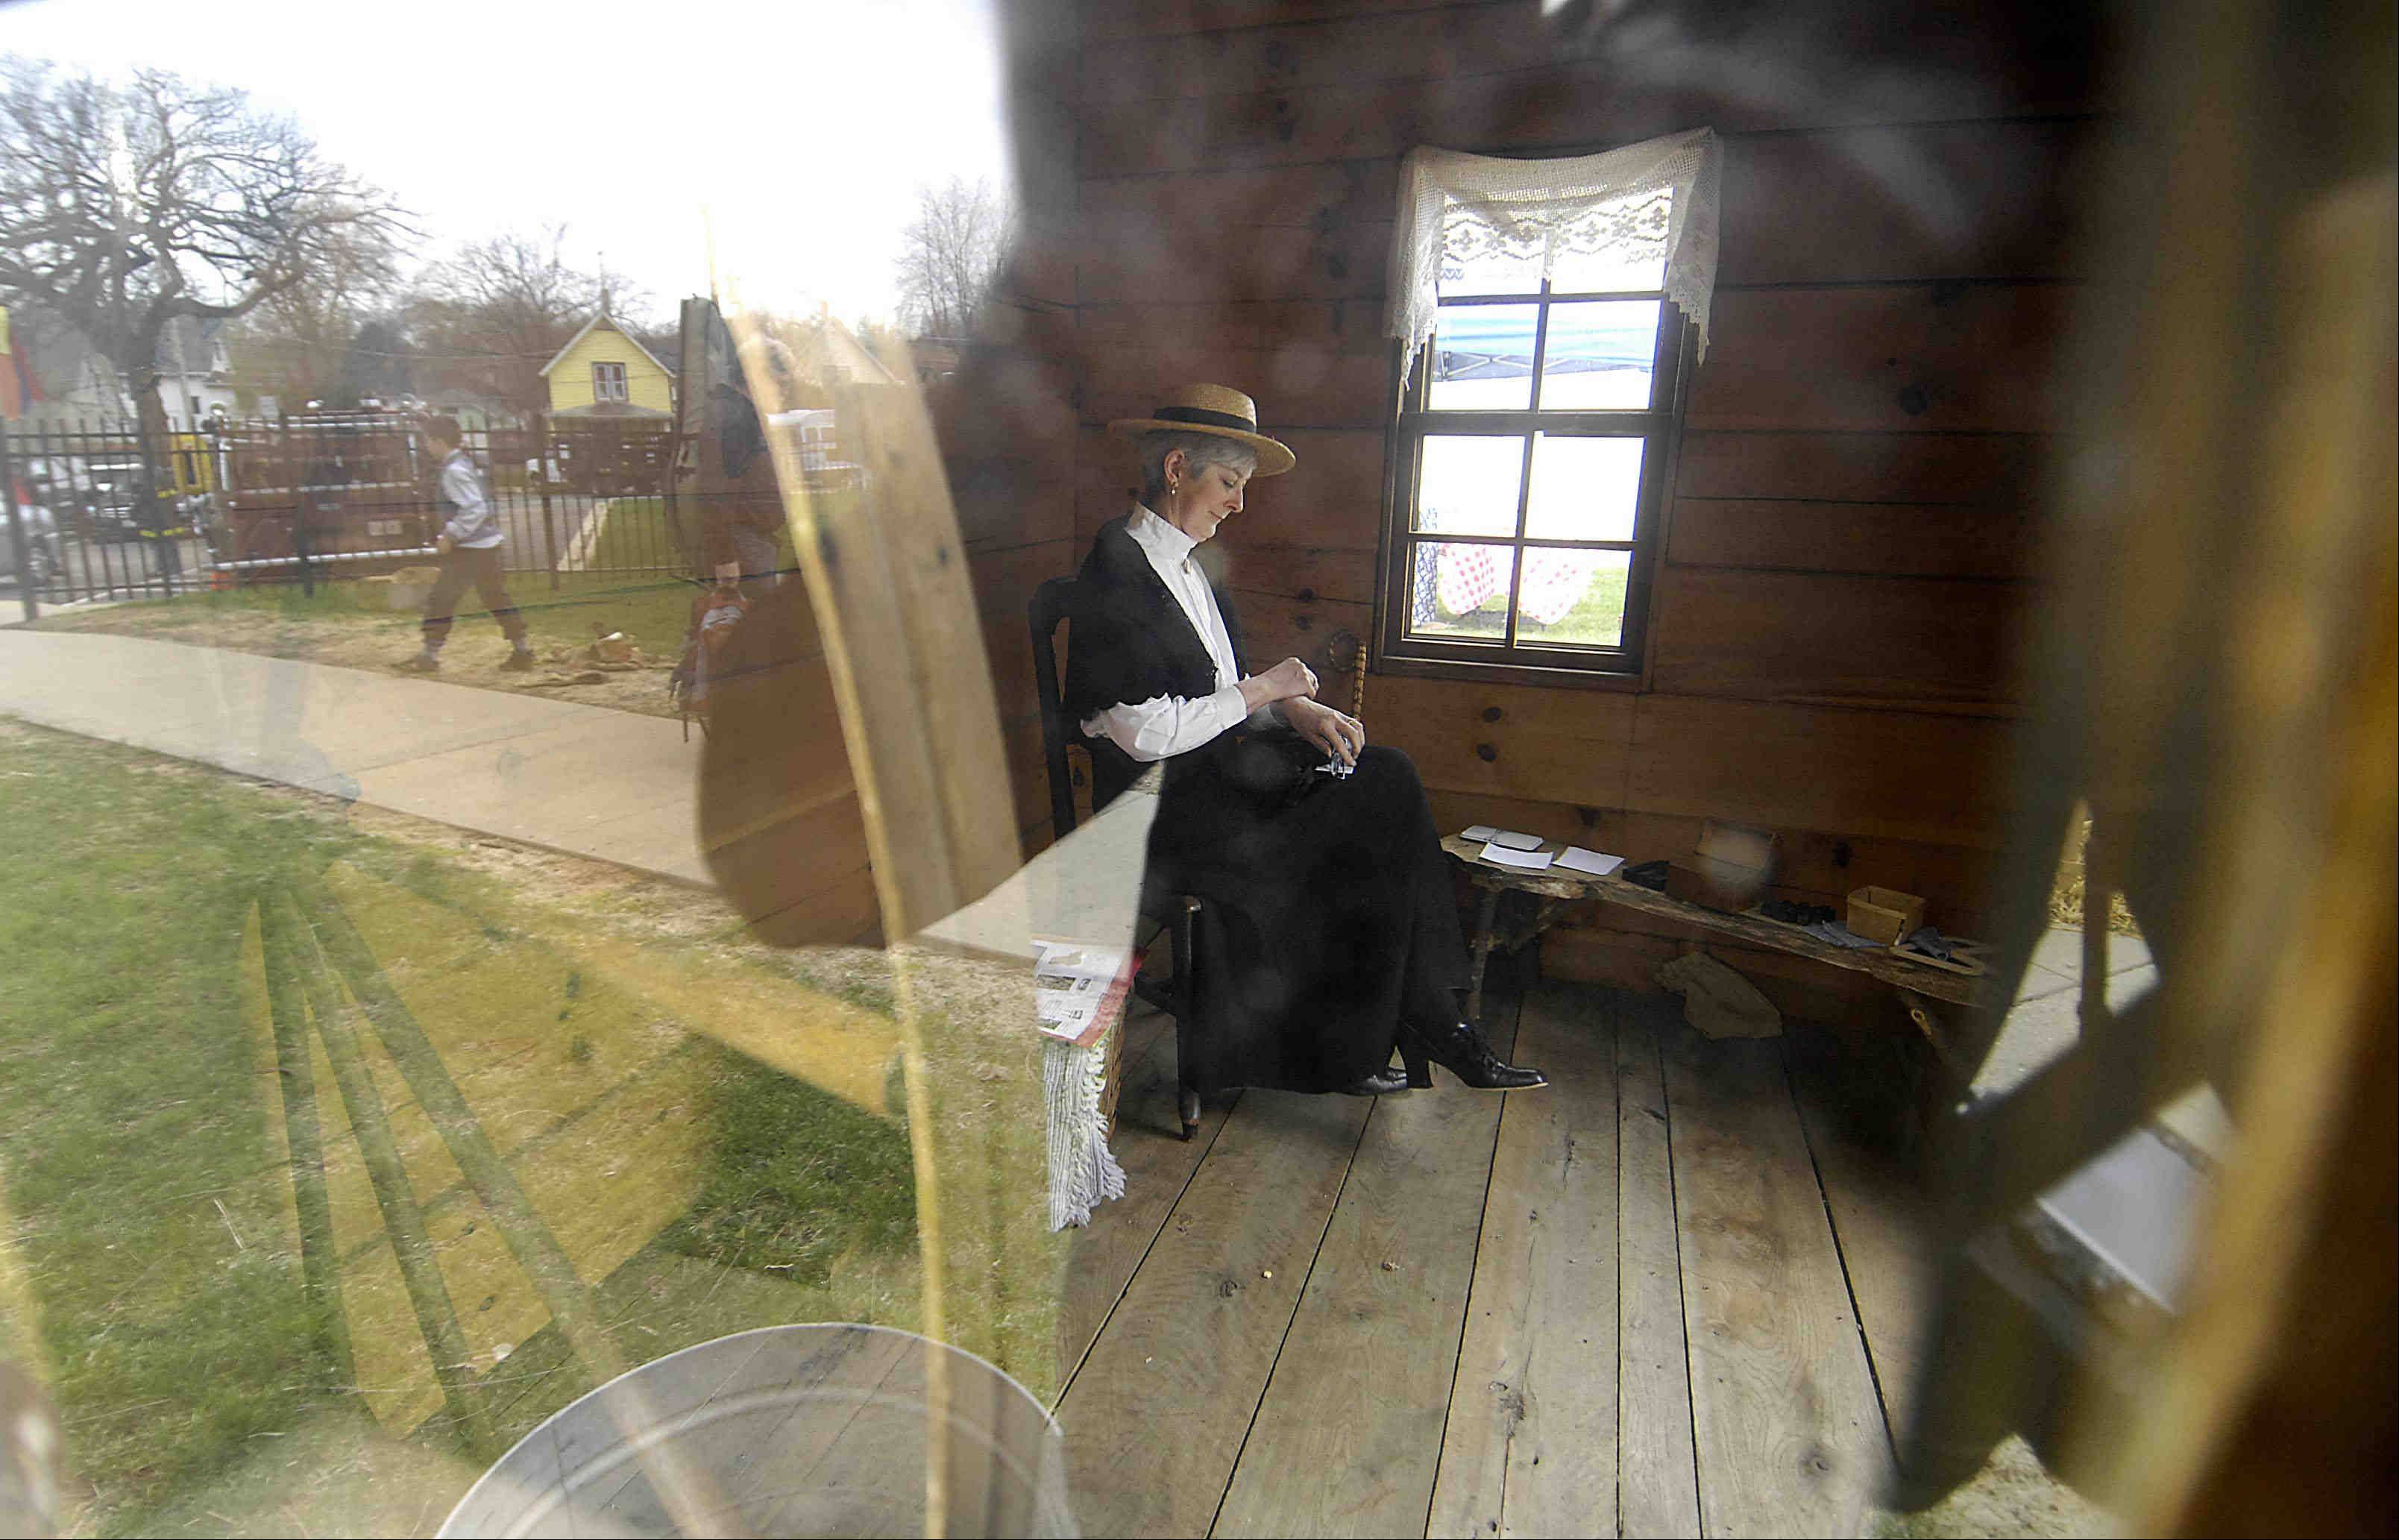 Seen through a small window, Linda Rock, of Elgin, sits inside a small schoolhouse Sunday at the ninth annual Elgin History Fair. She was playing the part of the school marm and waiting for visitors. The event featured chances to learn about making butter by hand, play with historical wooden toys and grind corn at the Elgin Historical Museum.